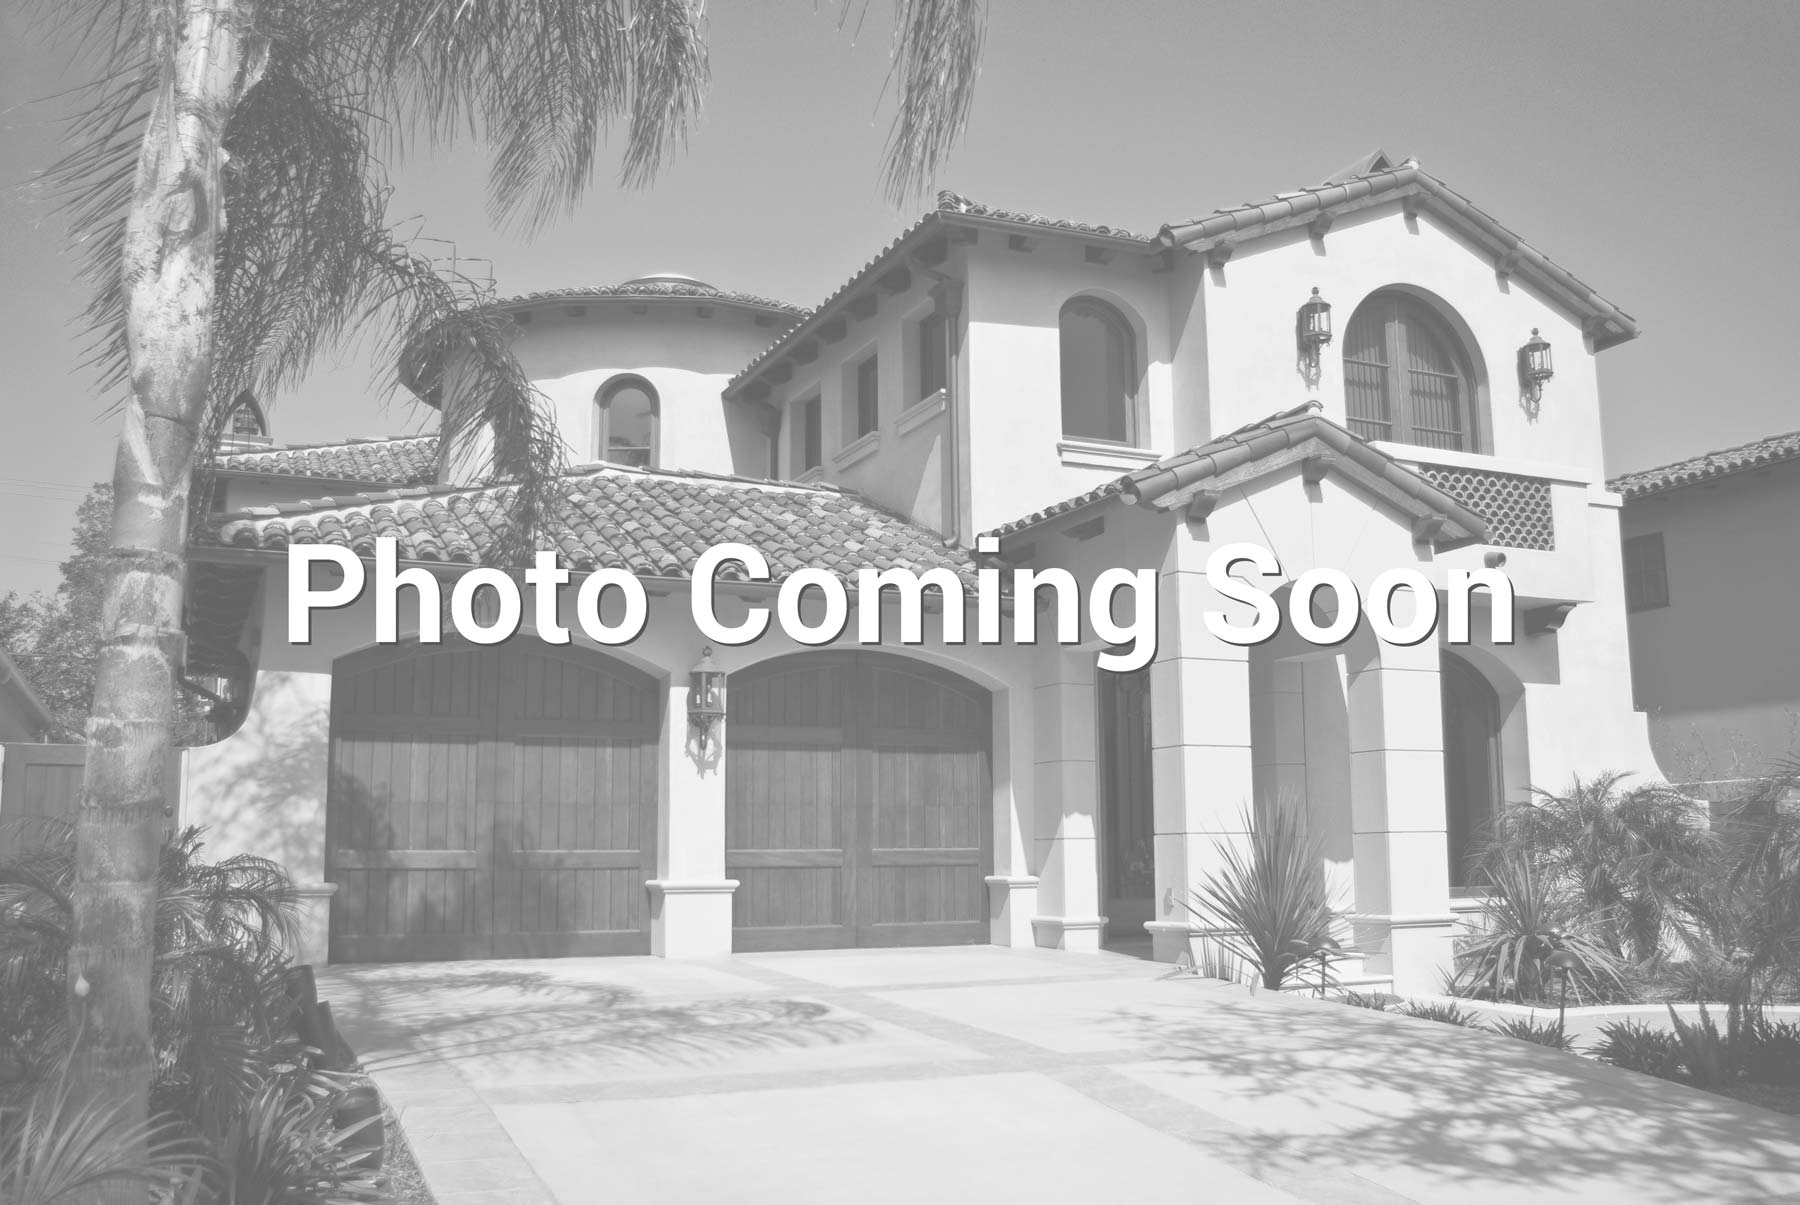 $405,000 - 5Br/3Ba - Home for Sale in Westwing Mountain Parcel 9 Mcr 569-31, Peoria